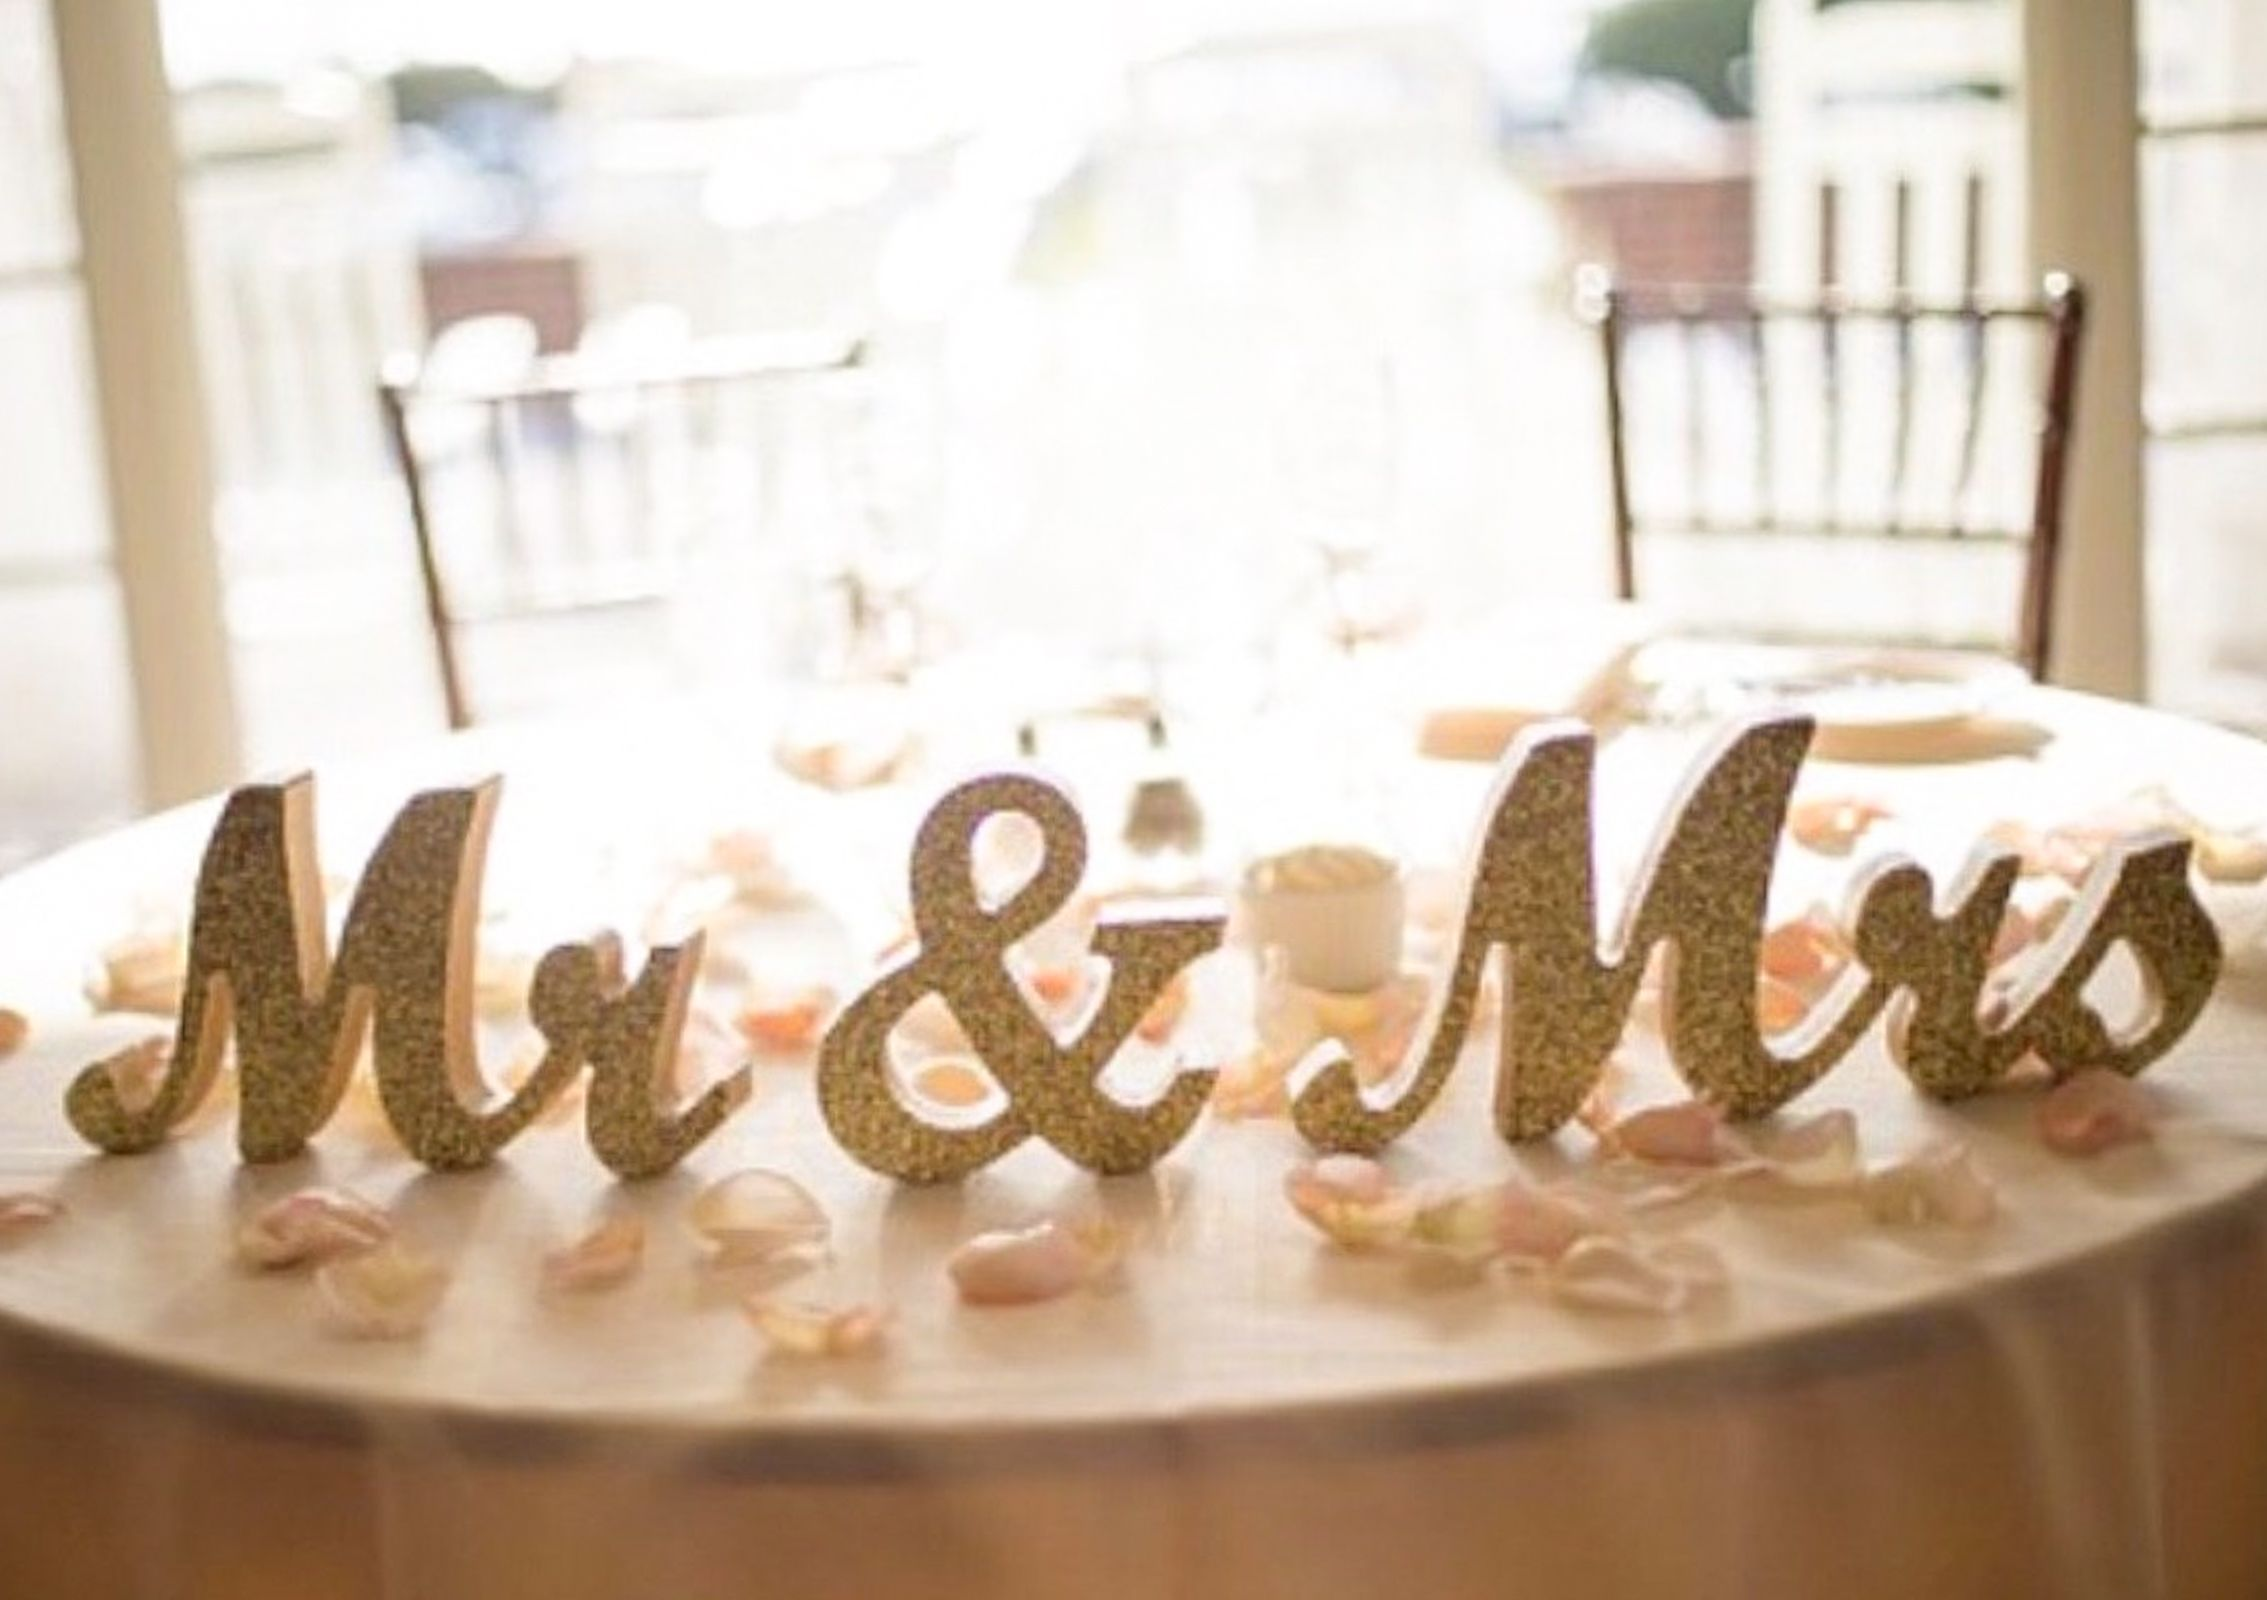 Pure White Mr /& Mrs Elegant Script Letters for Wedding Table Decor Rustic Wedding Signage. Wedding Top Table Decor White